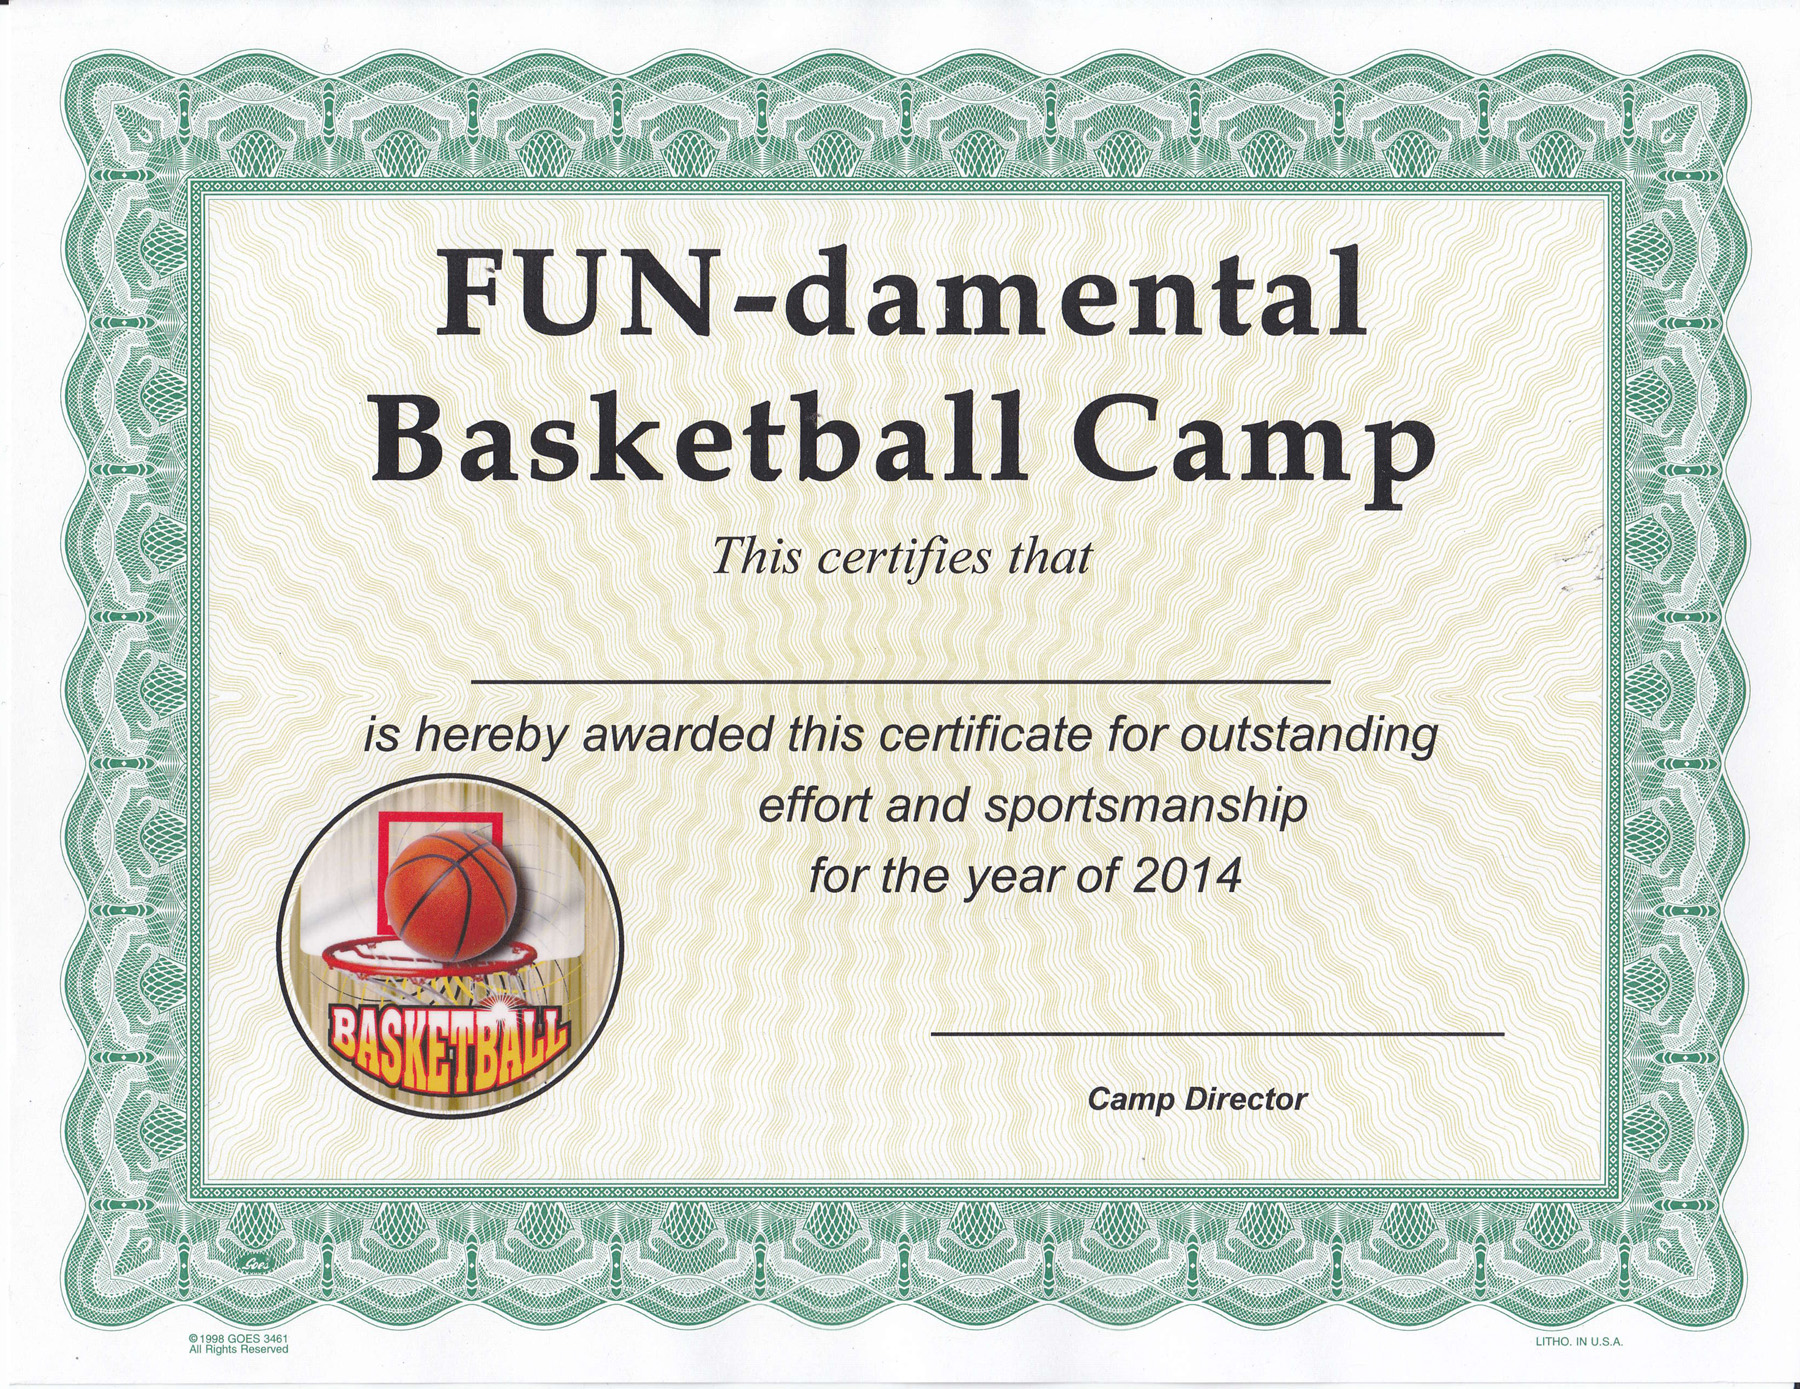 Custom Printed Certificates With Insert Emblem 8 12 X 11 Black